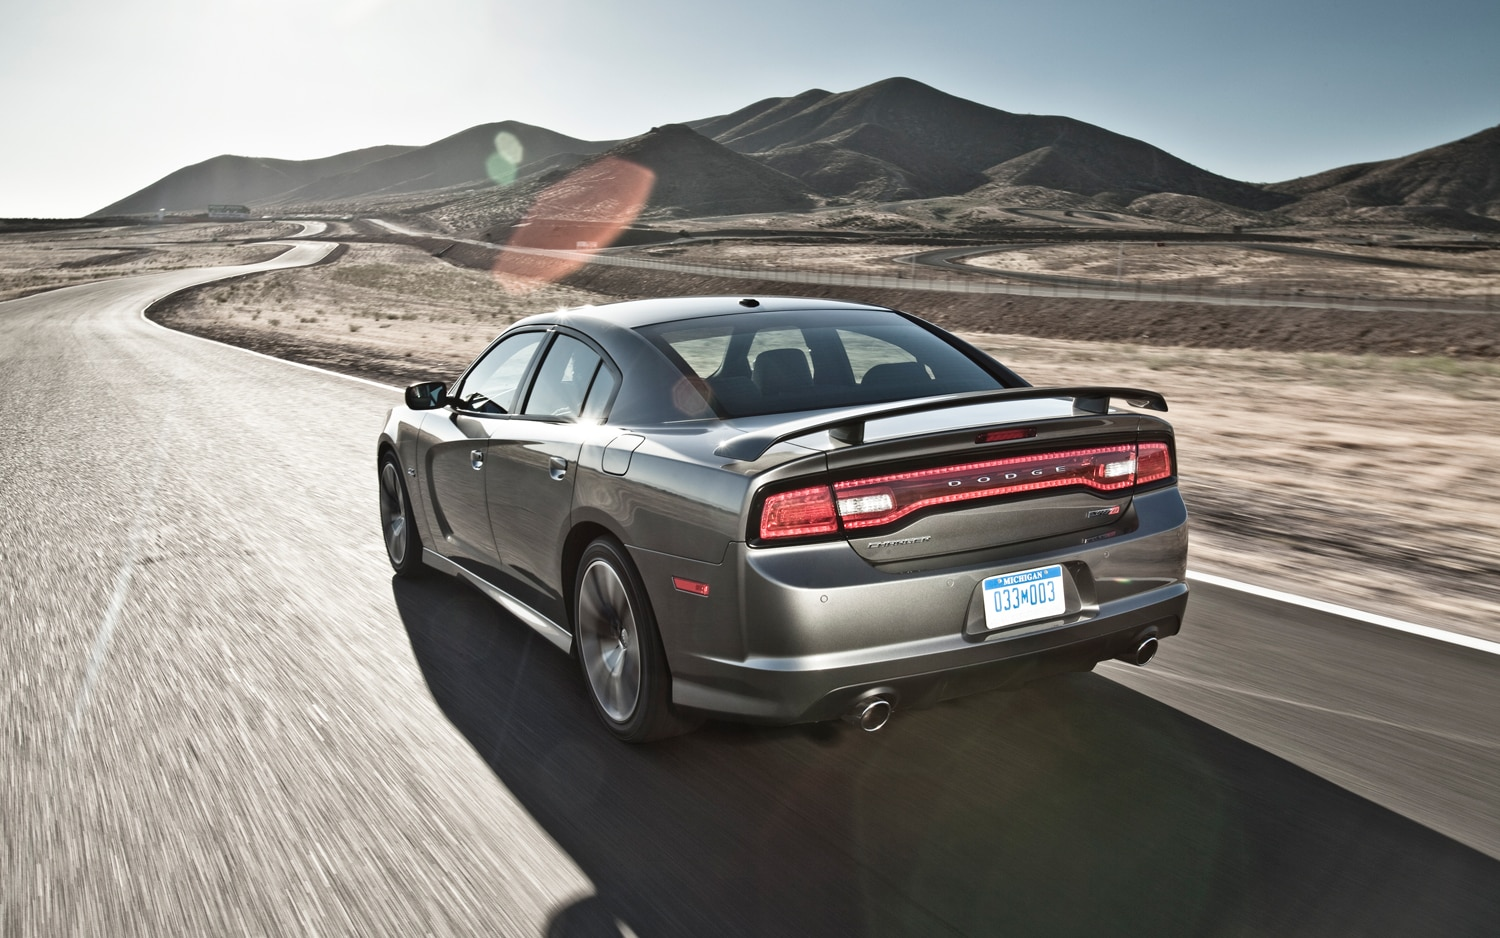 Dodge charger coupe (додж чарджер купе)